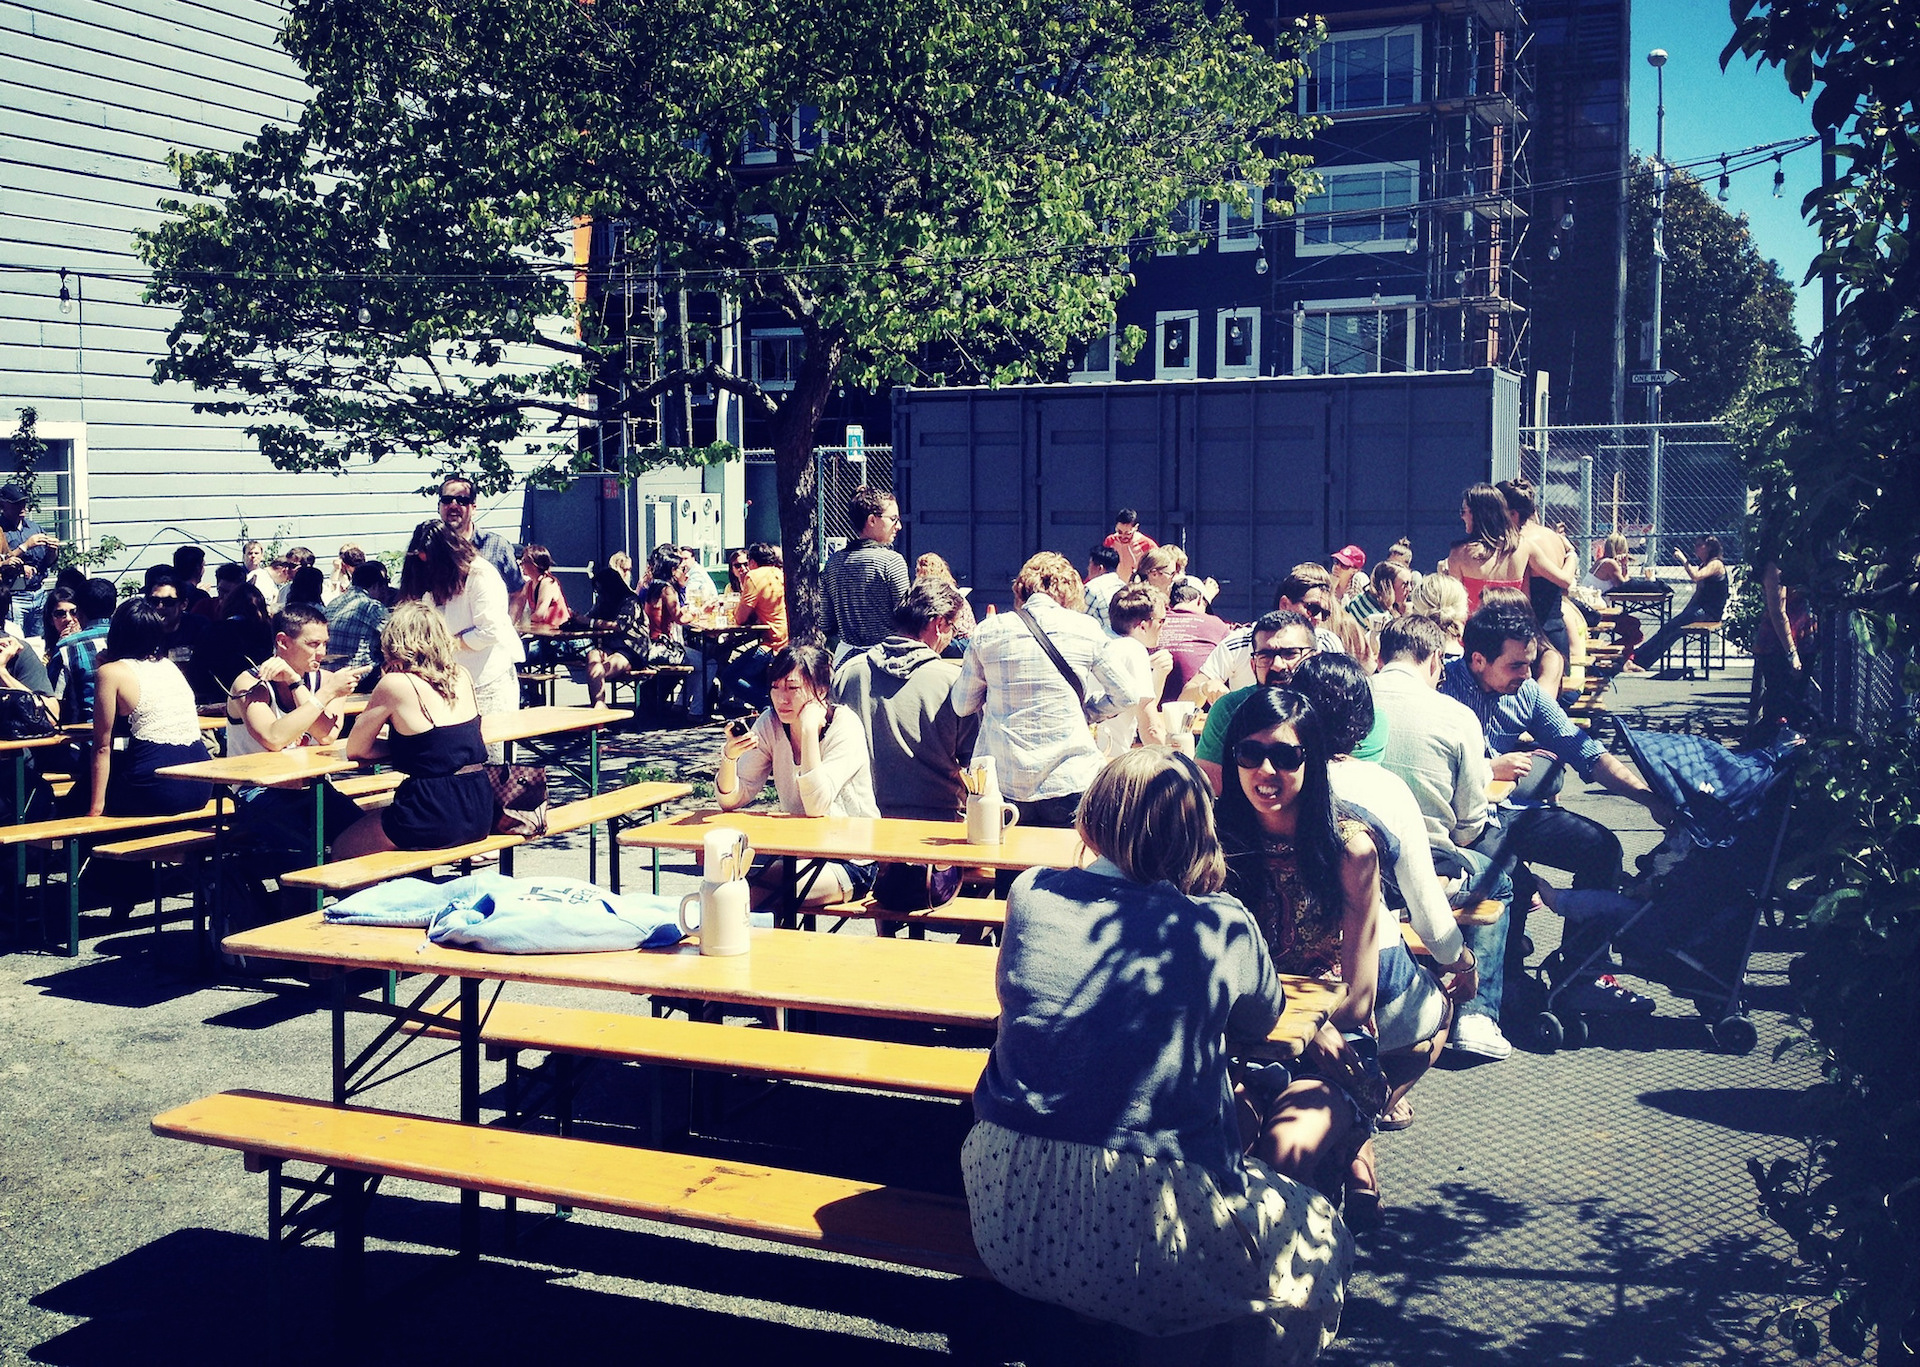 Biergarten in San San Francisco